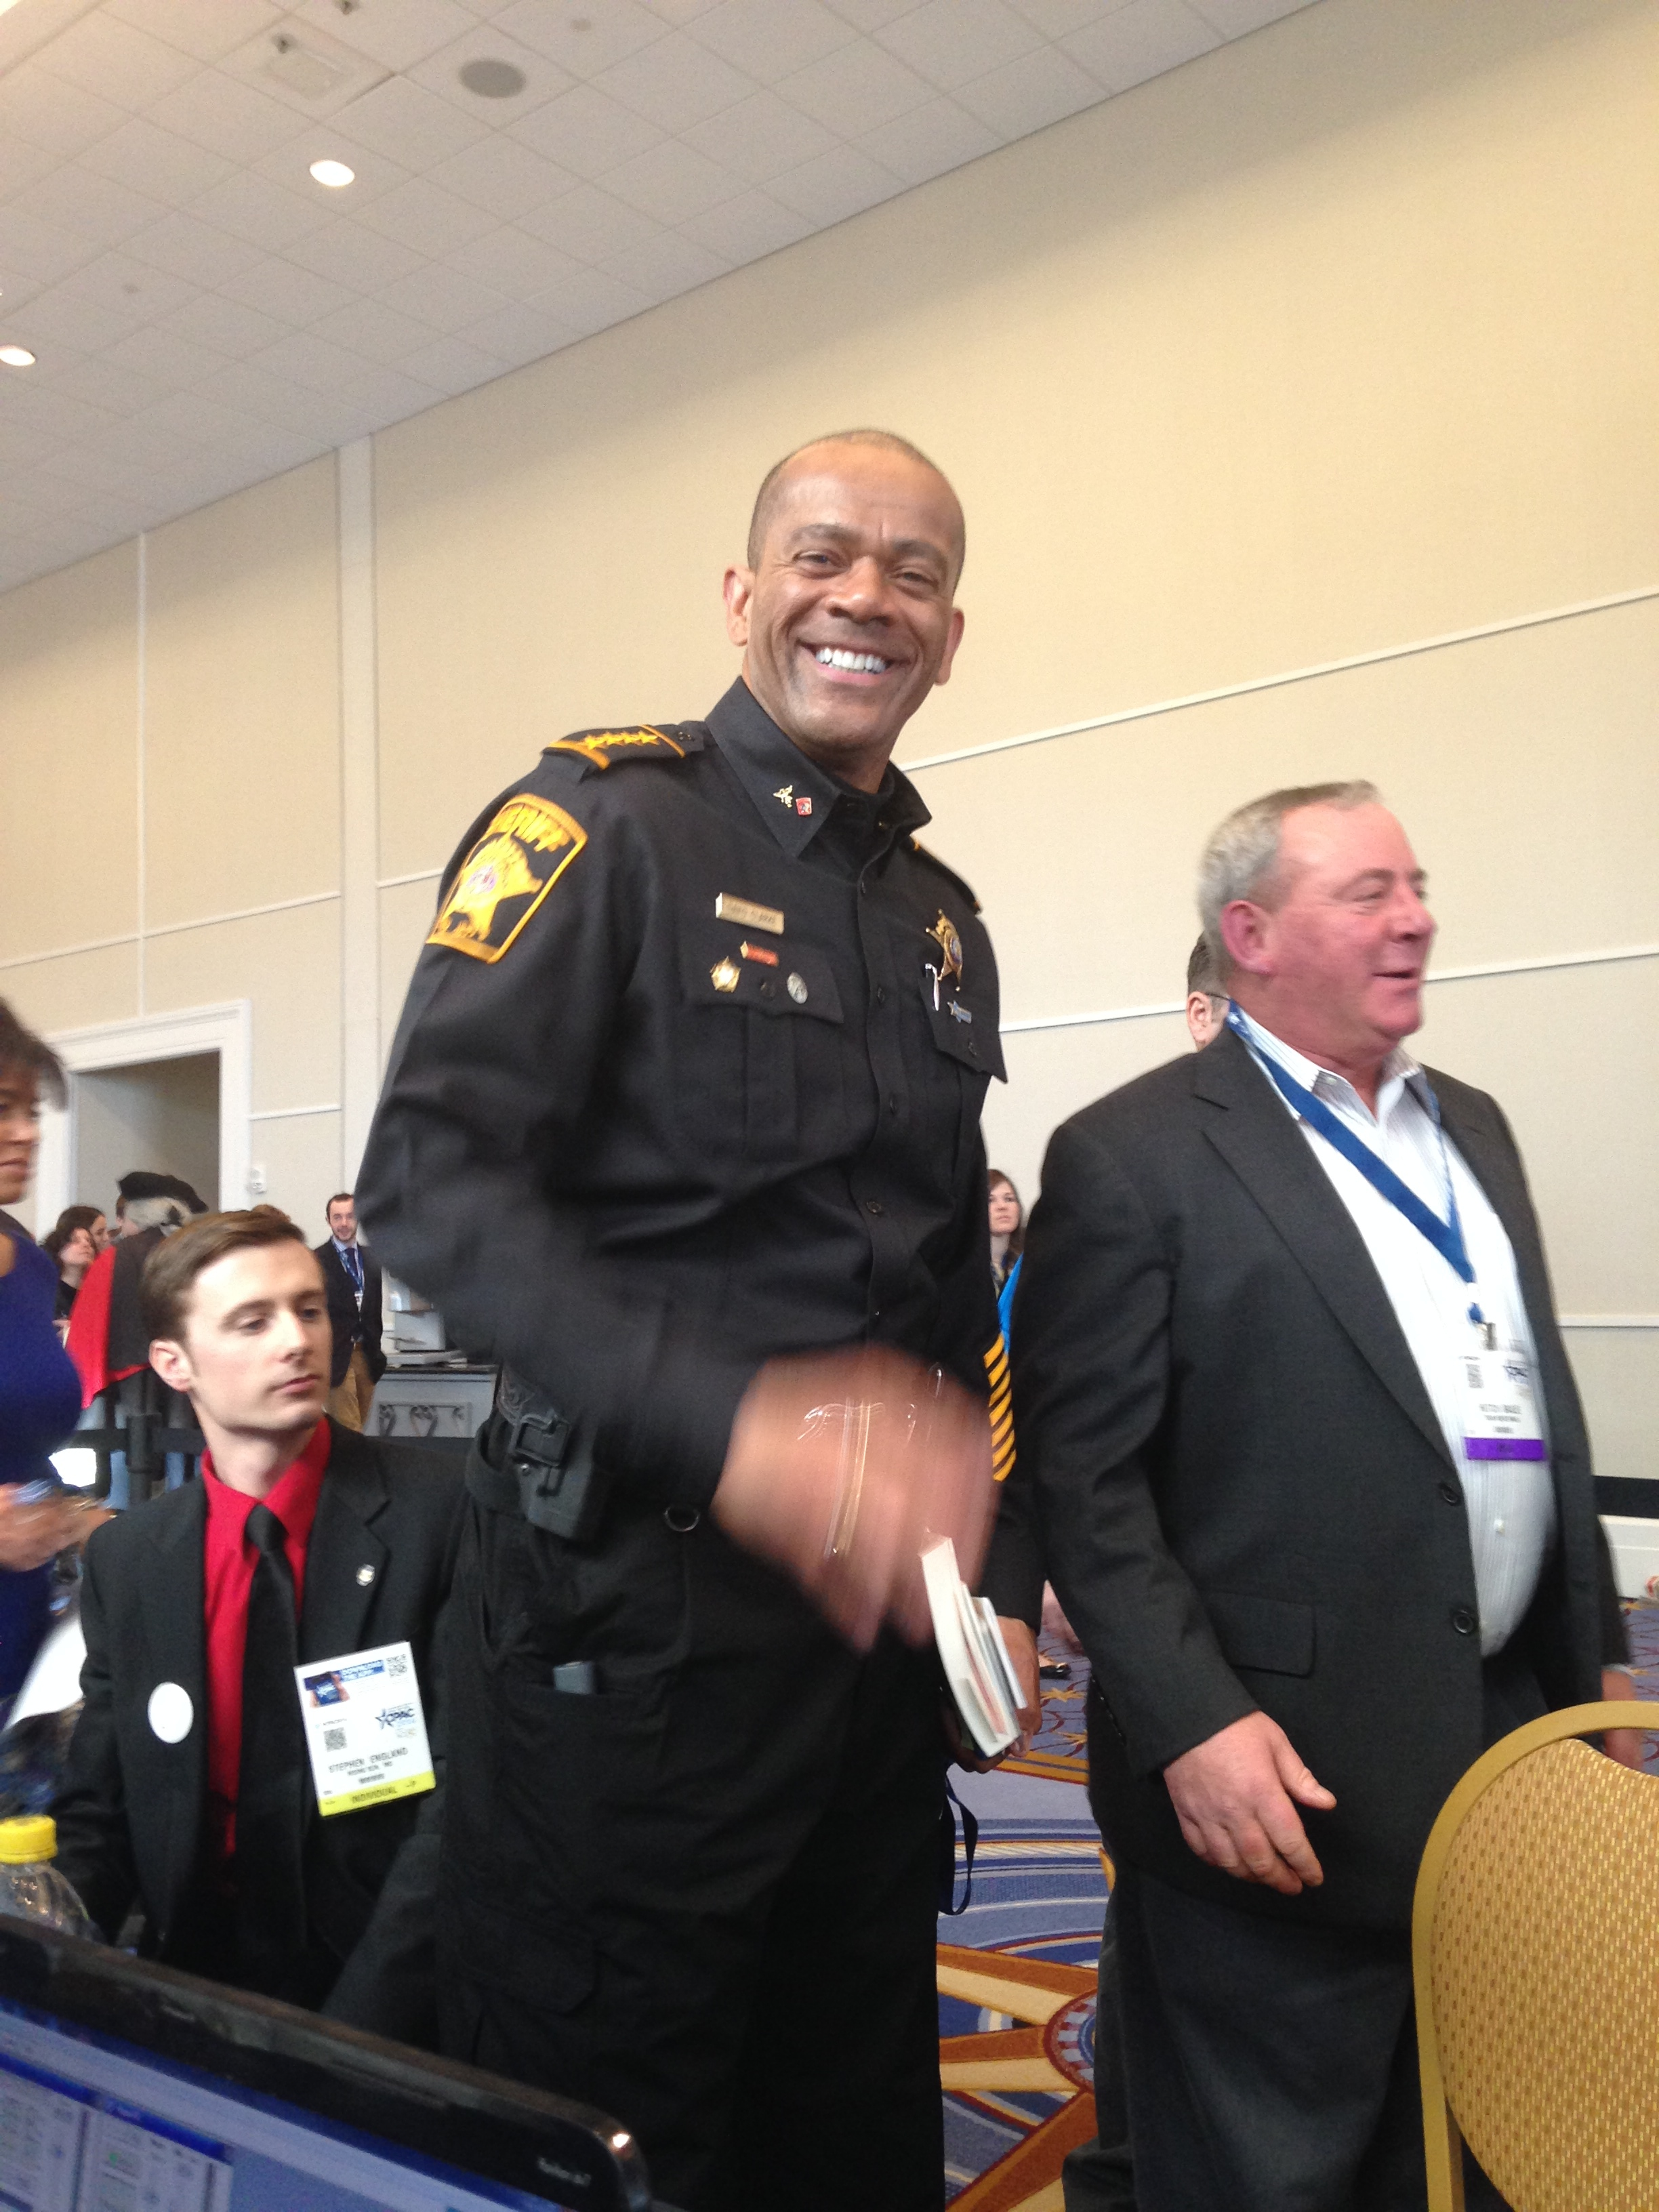 Sheriff Clarke gives a smil